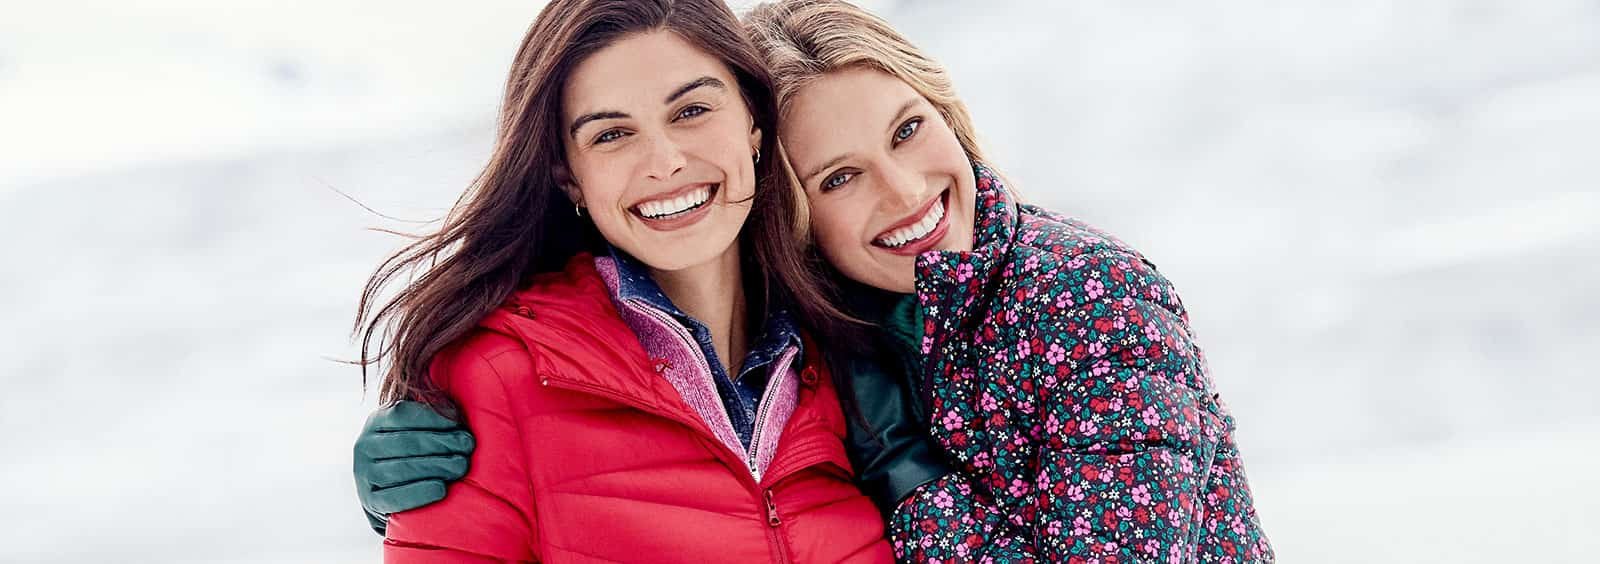 caring for down womens outerwear